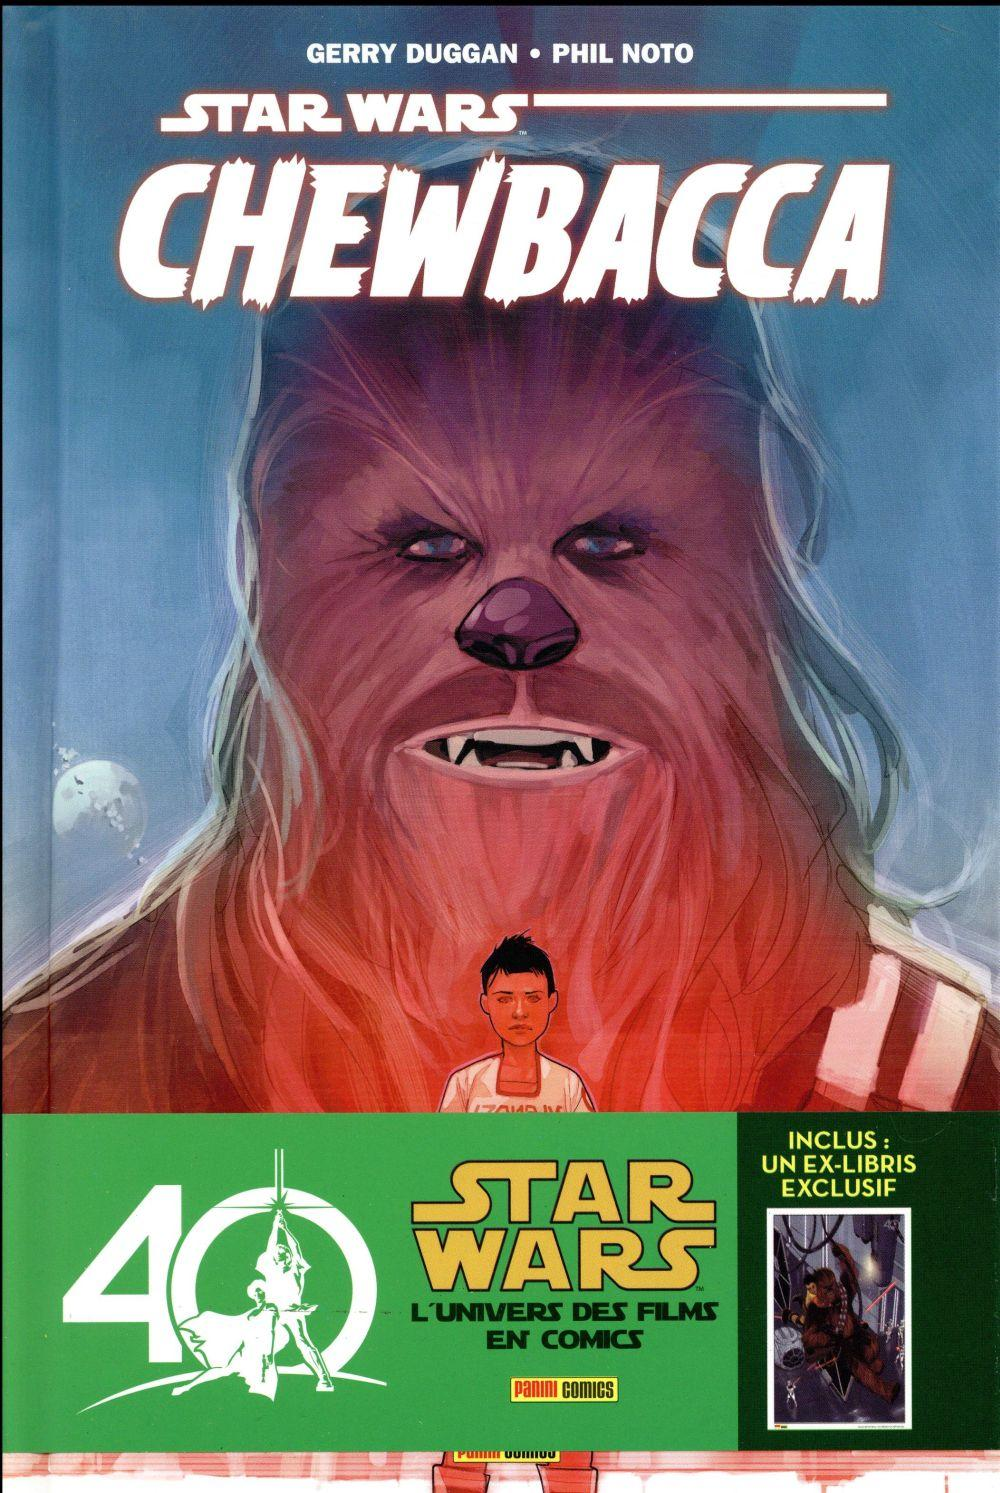 Vente Livre :                                    Star Wars - Chewbacca T.1                                      - Gerry Duggan  - Phil Noto